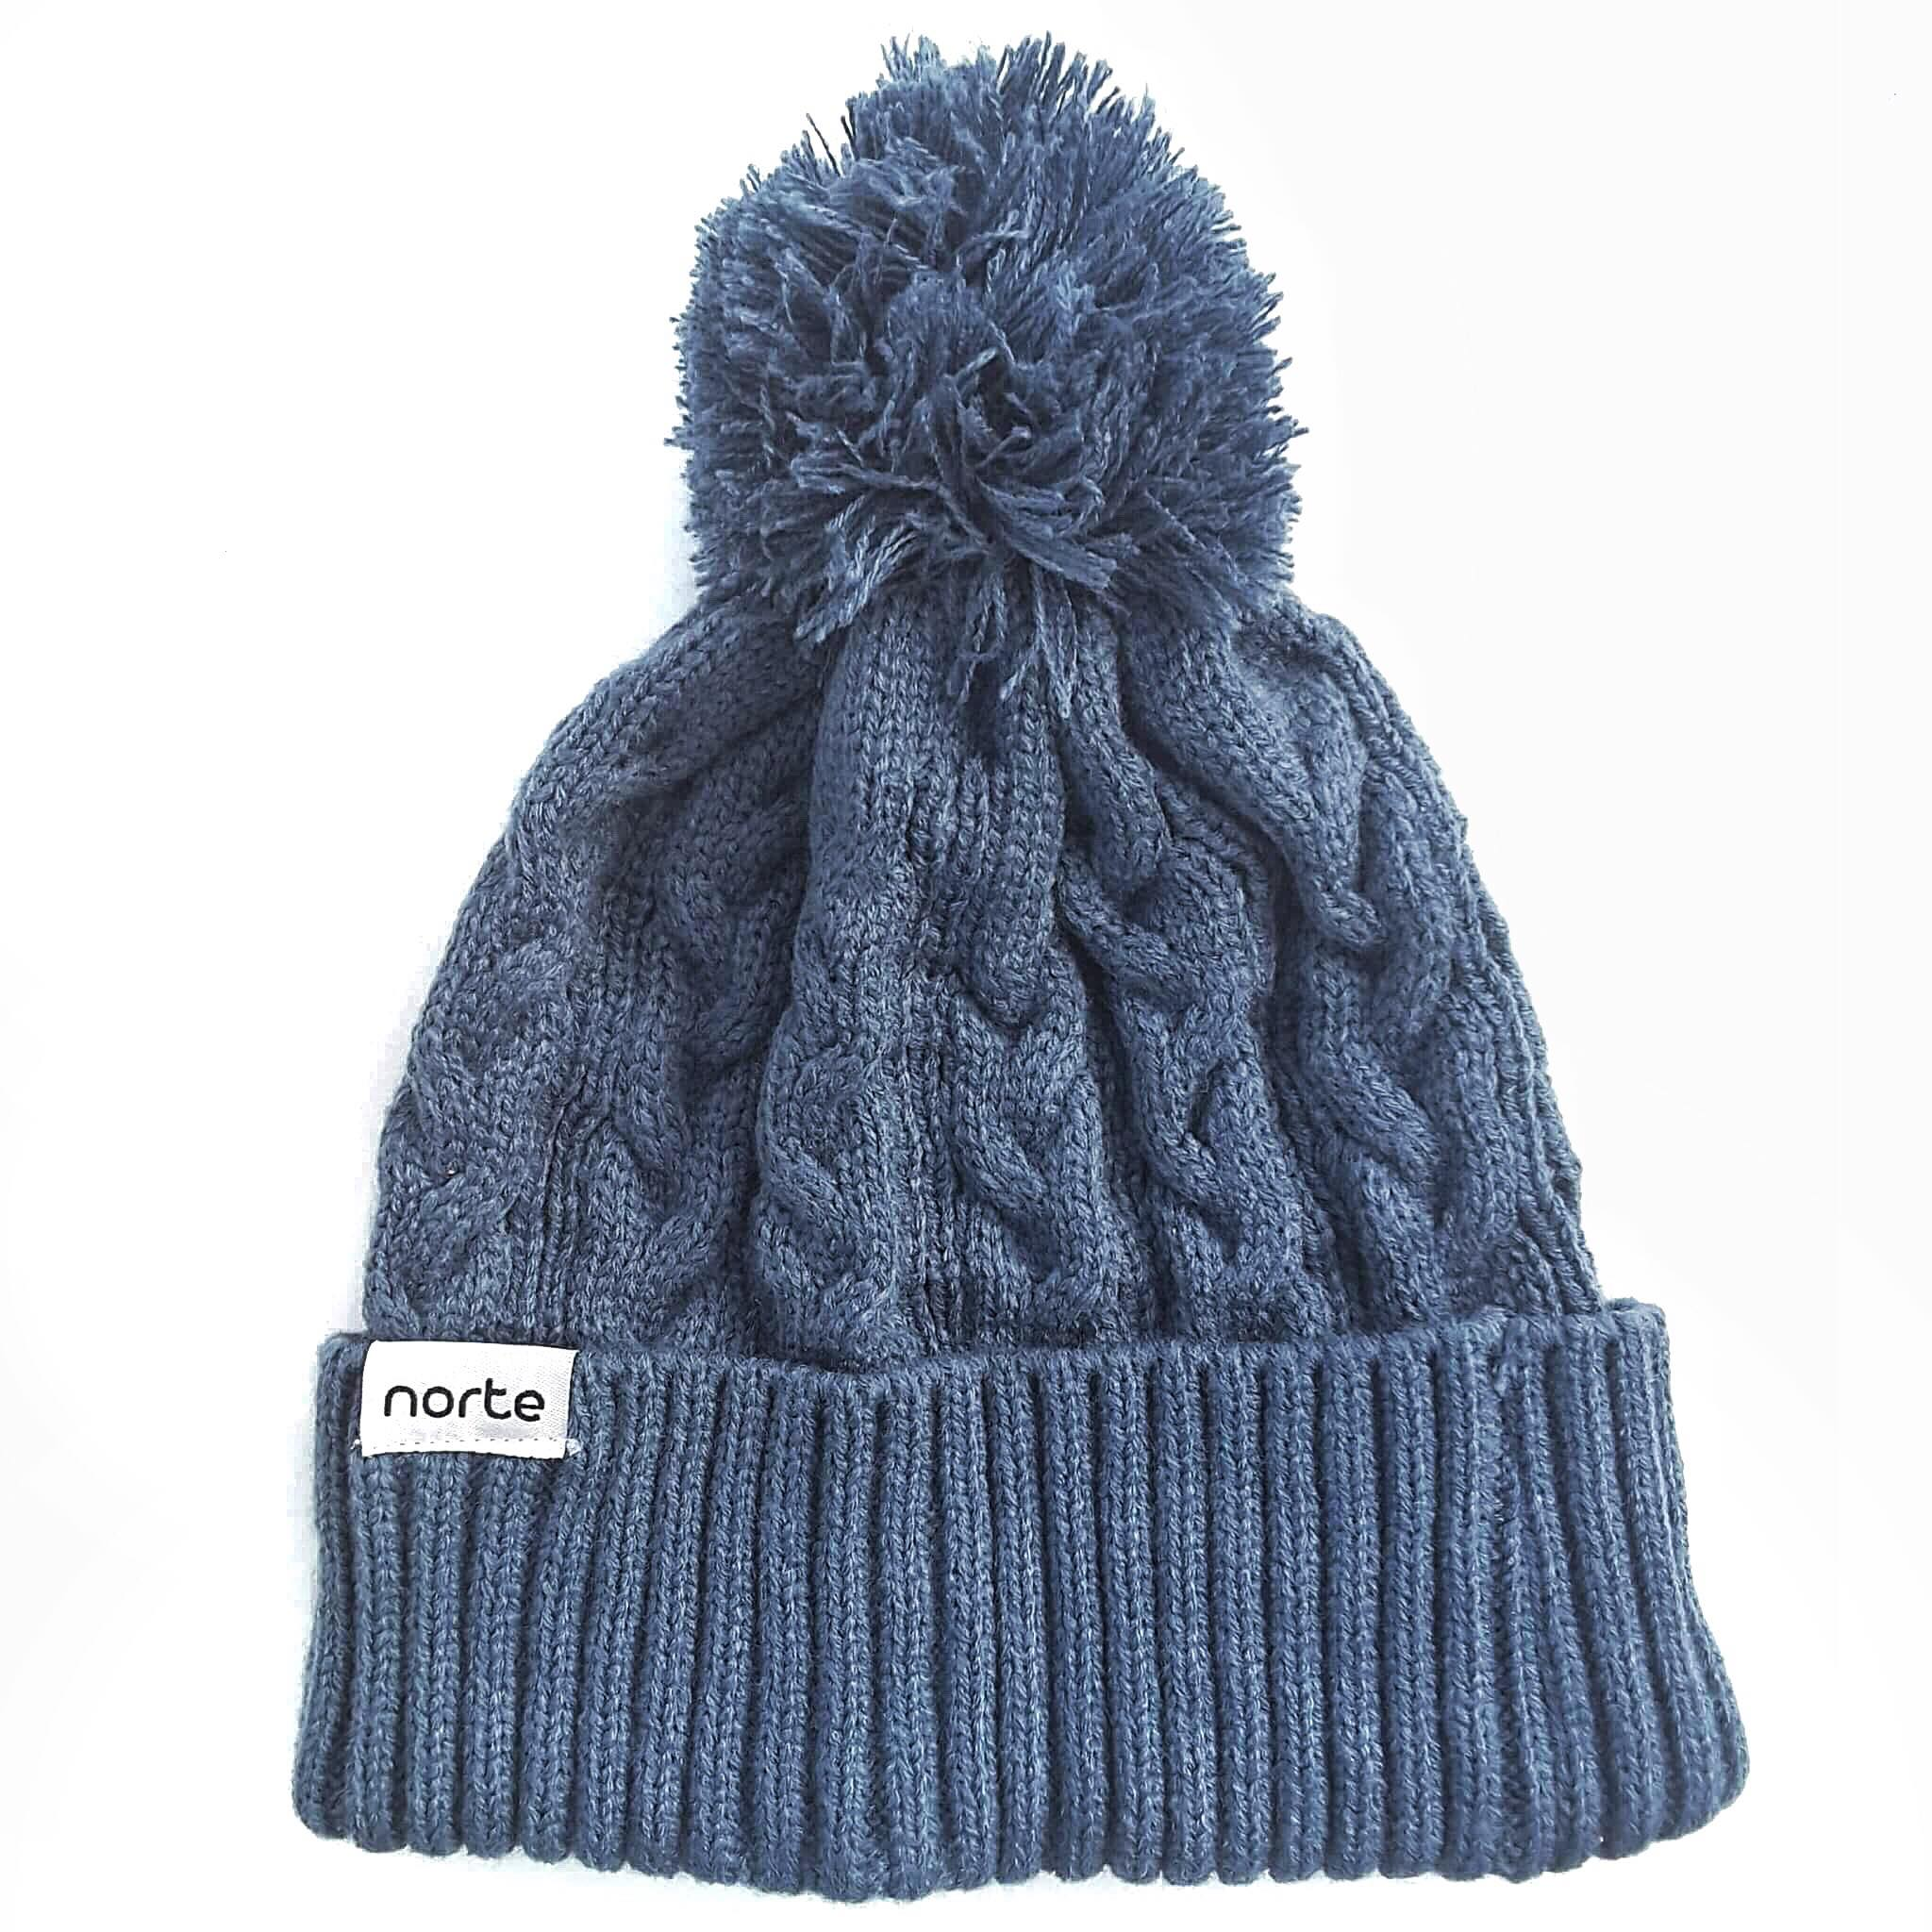 07b4f3a1898 Still Got The Blues - Cable Knit Beanie – Norte